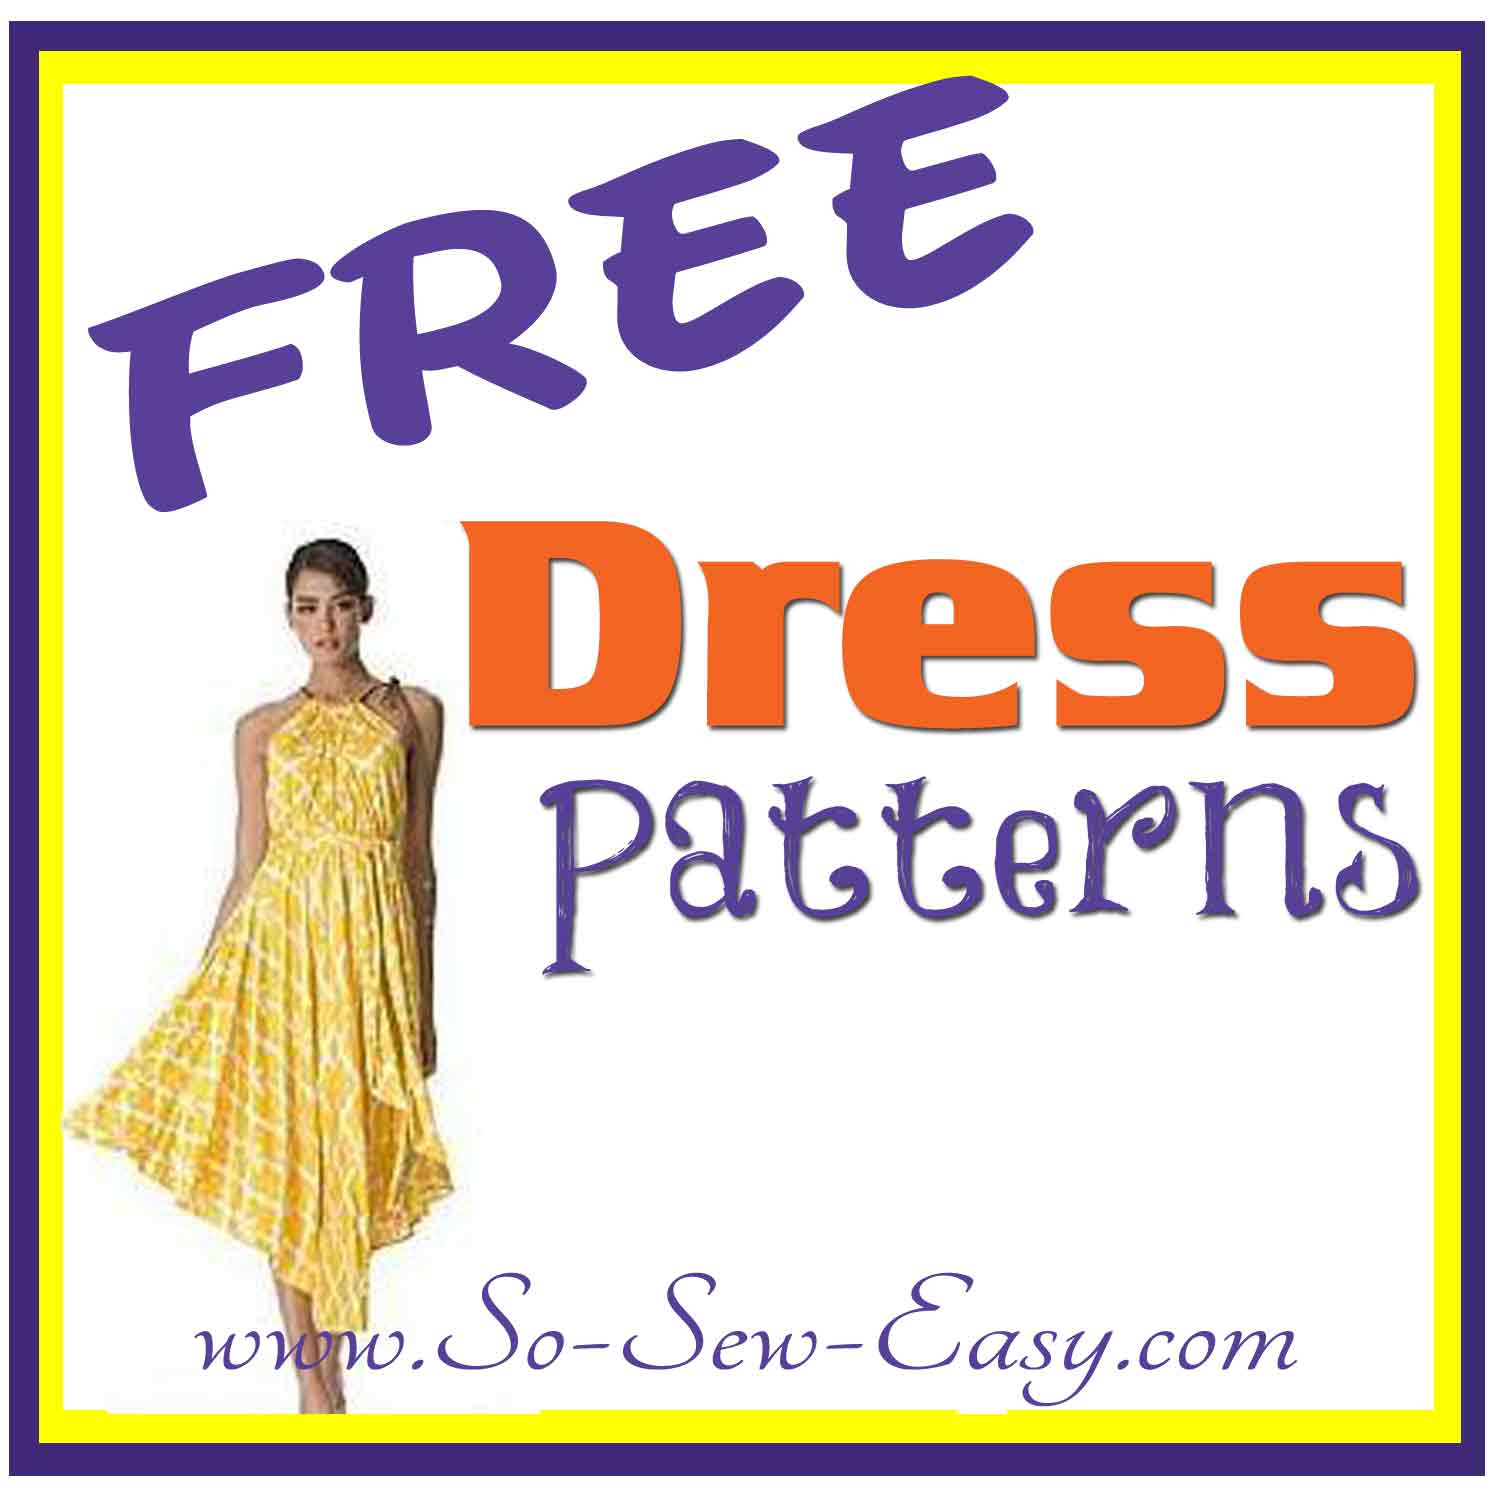 Free Lingerie patterns, plus swimsuits and nightwear - So Sew Easy